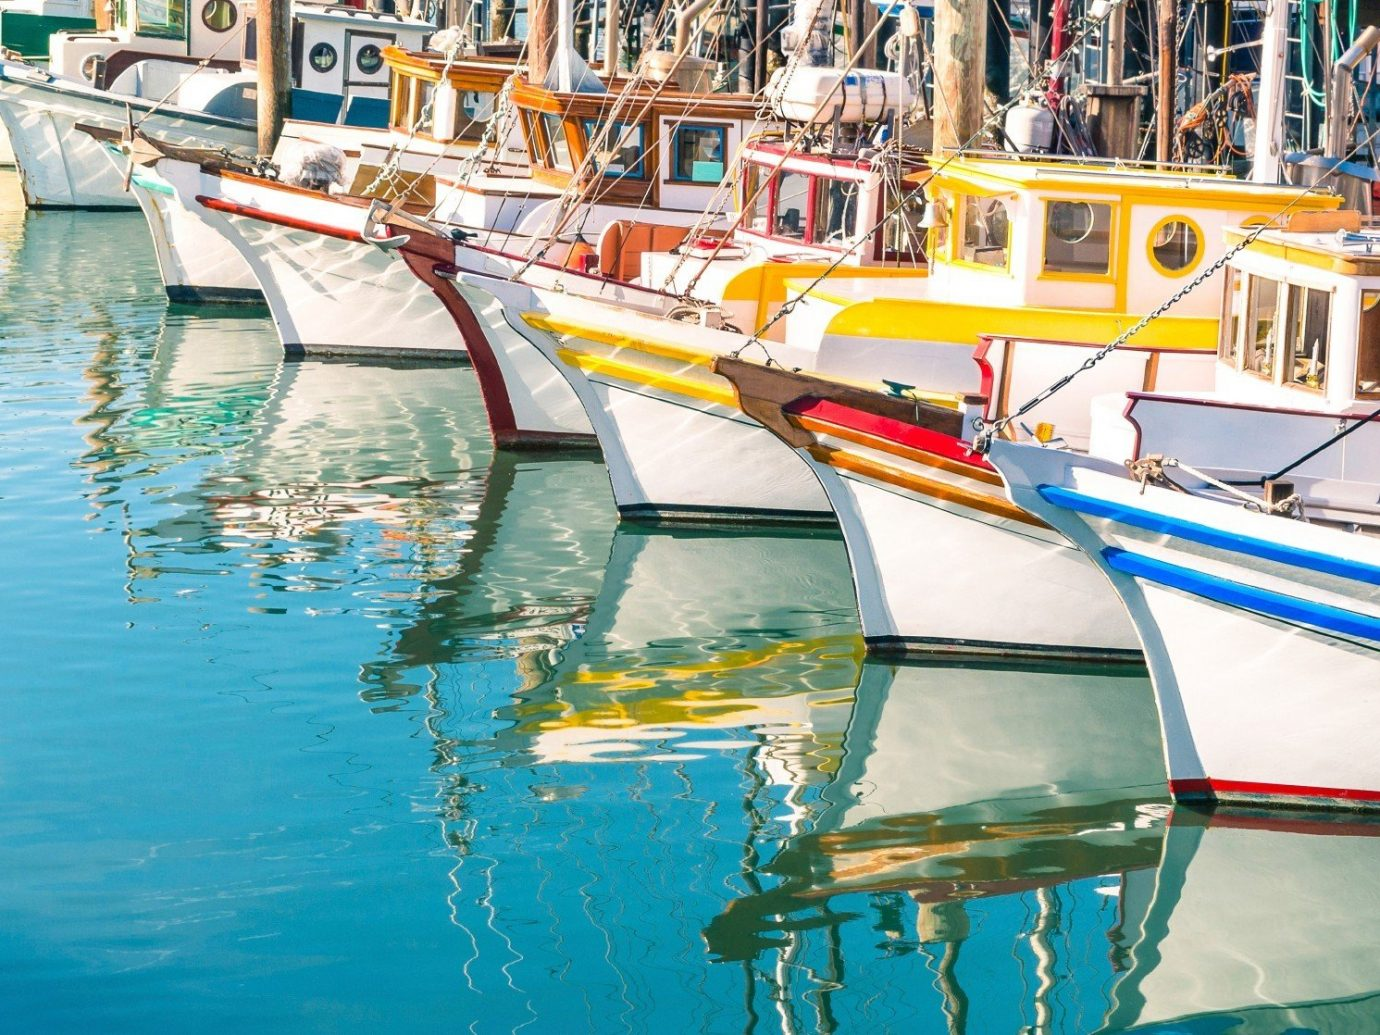 Trip Ideas water Boat outdoor vehicle scene Harbor boating Sea watercraft yellow dock waterway fishing vessel marina port